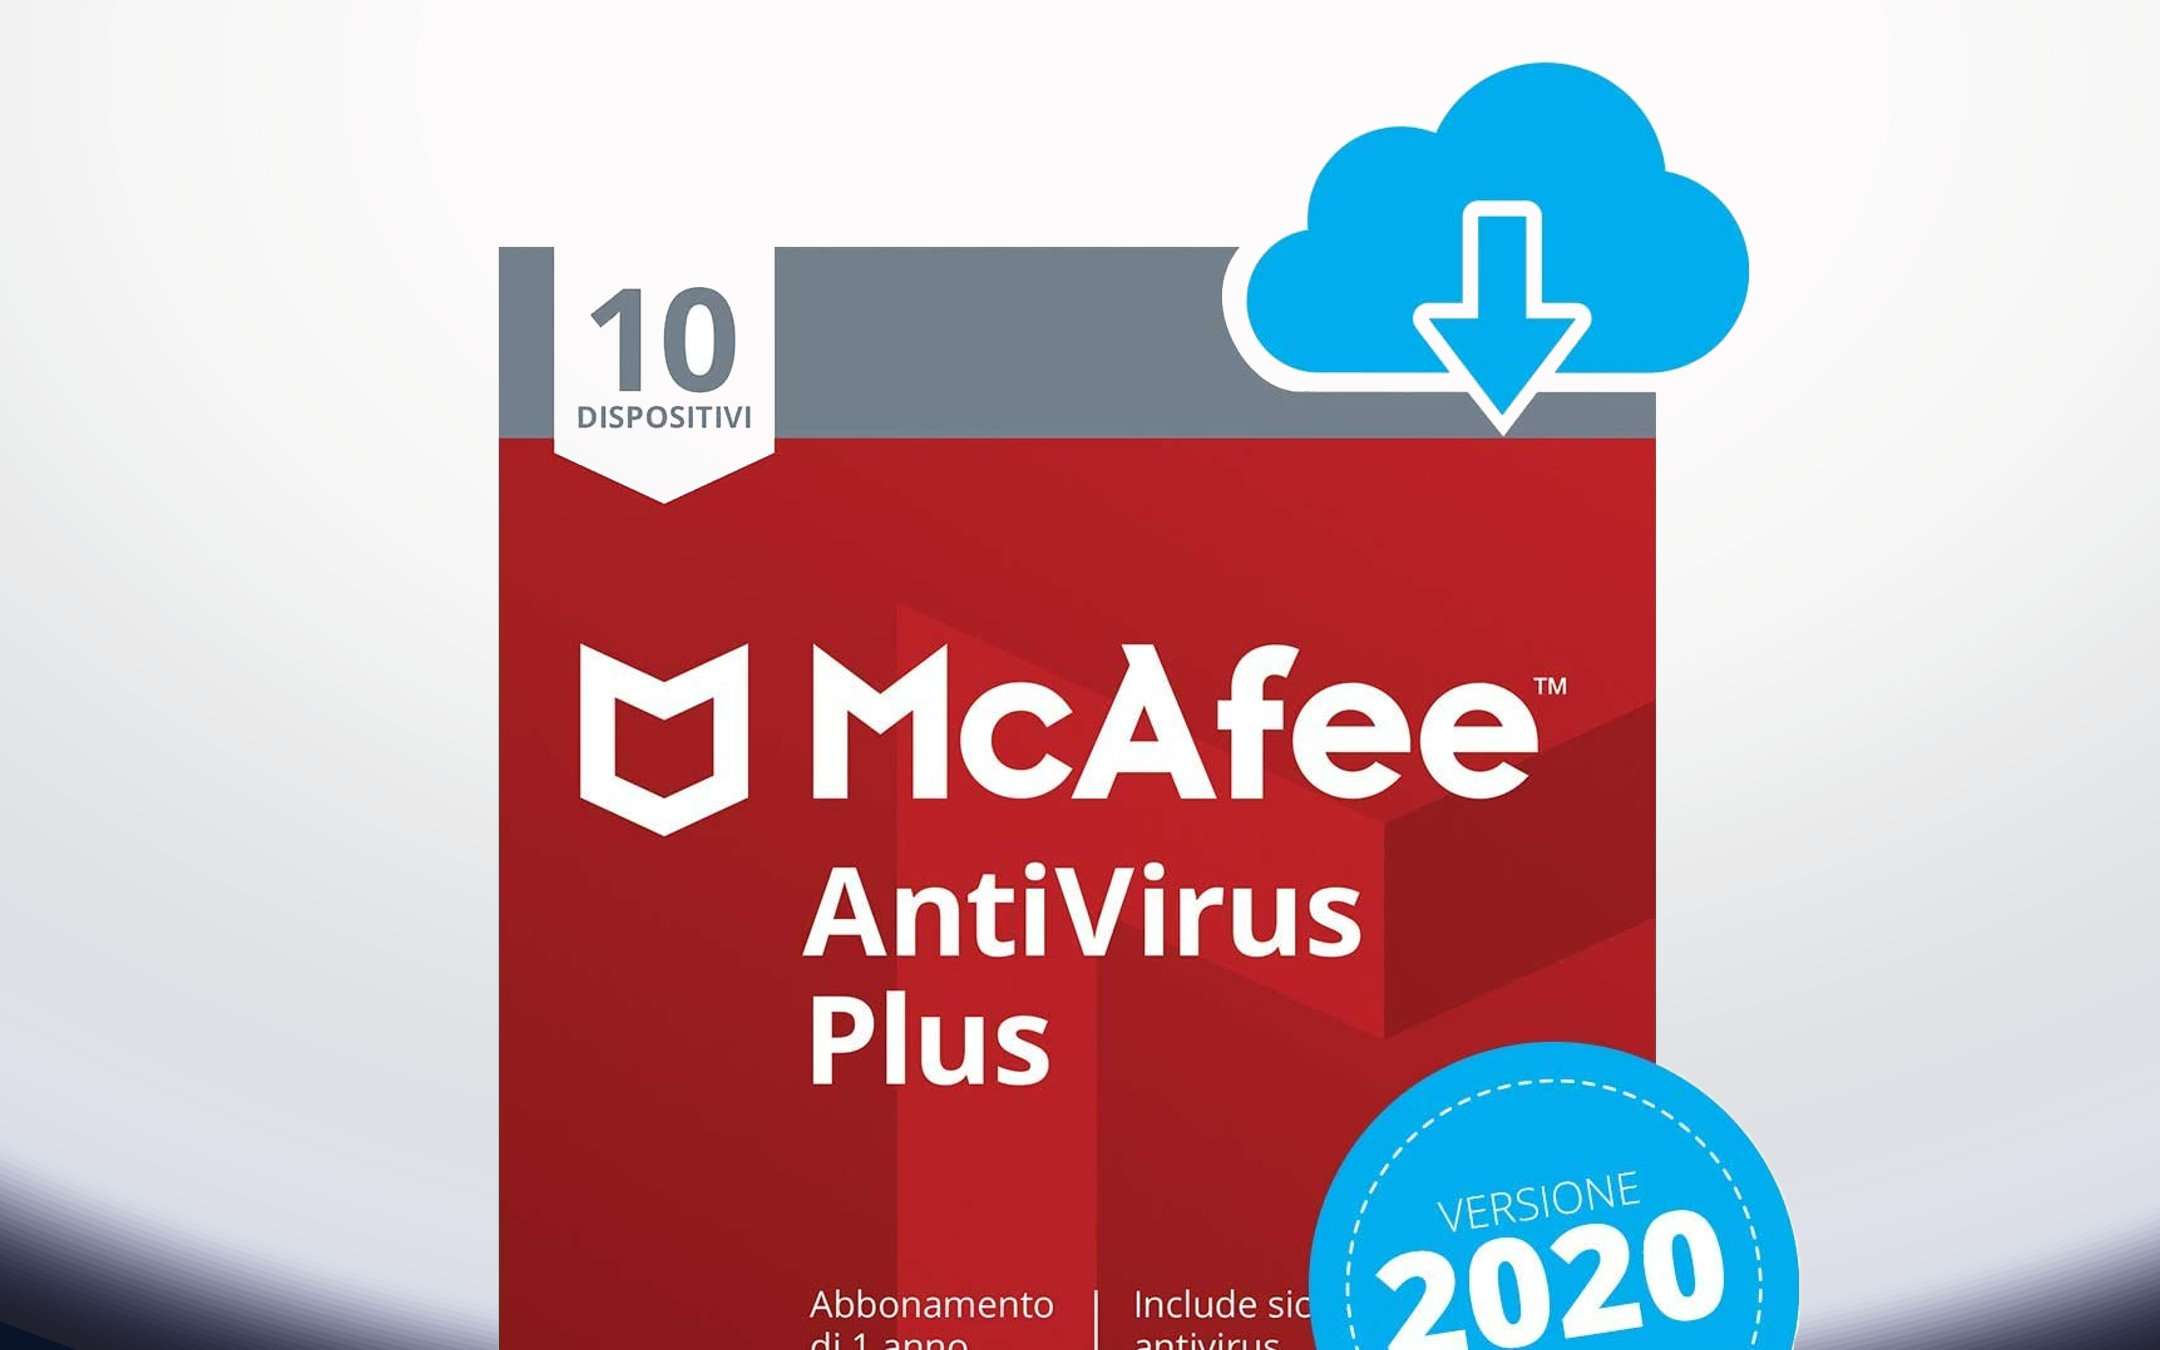 McAfee for 10 devices: the price drops by 71%